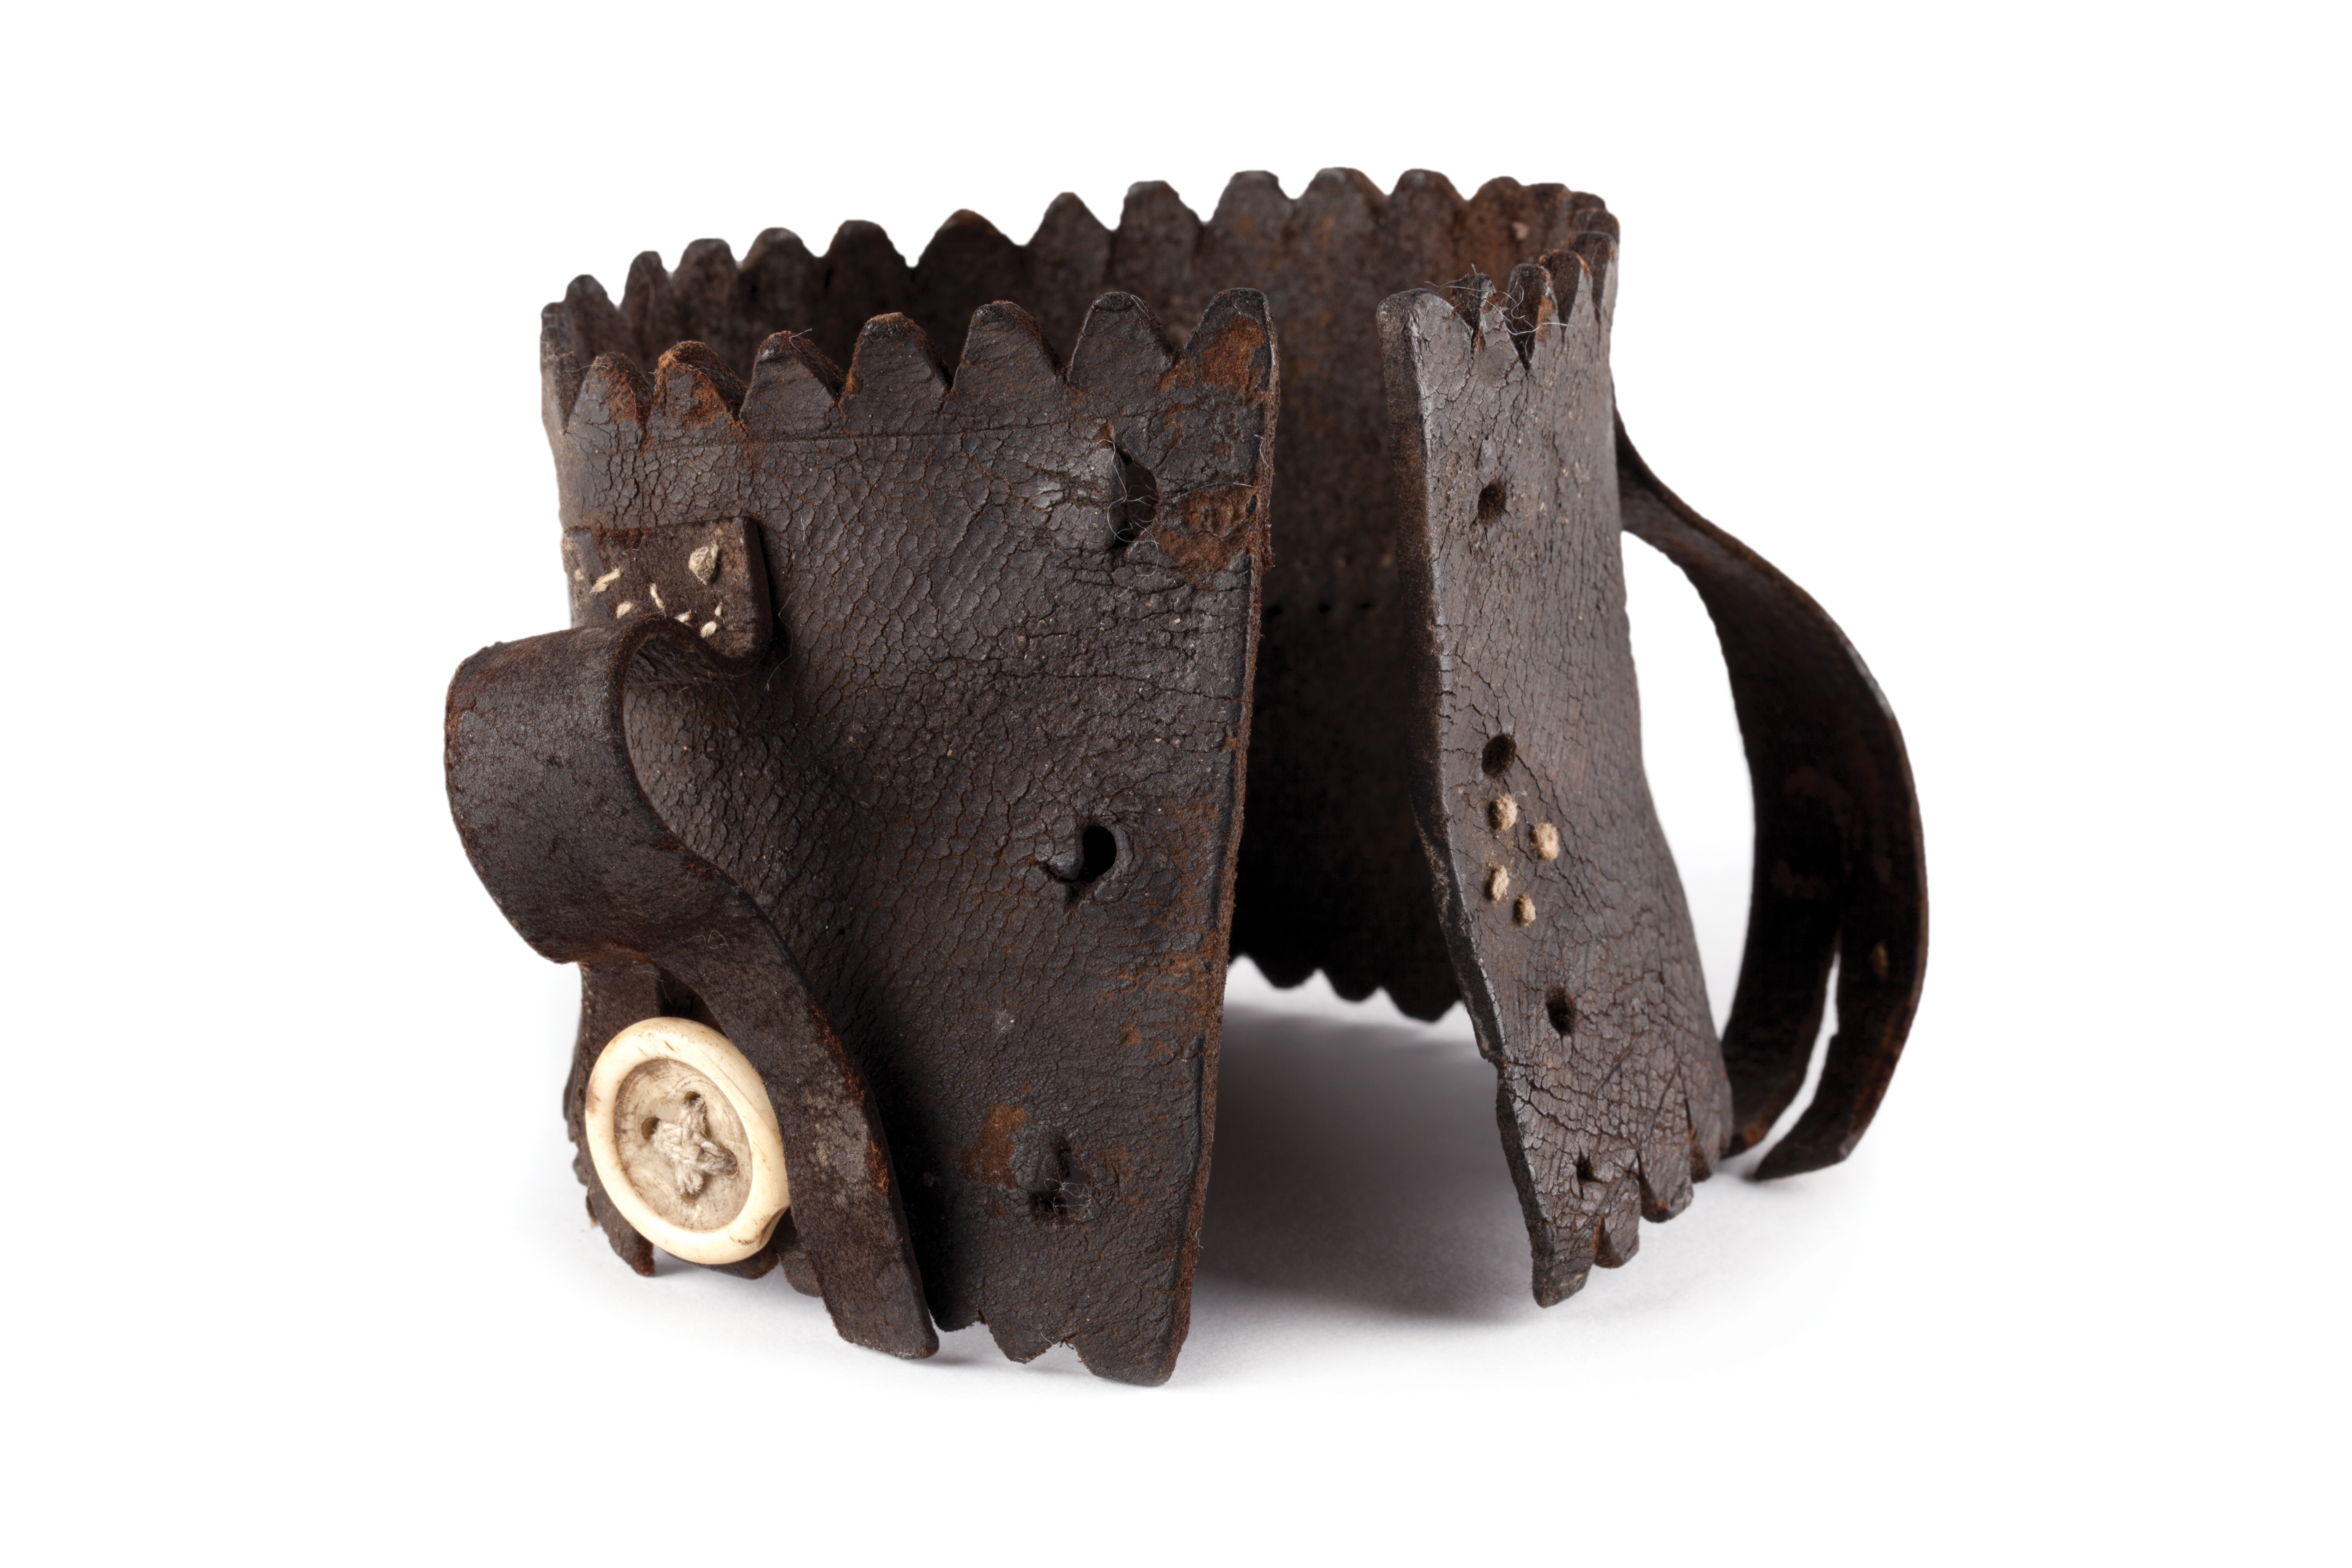 Brown leather hand sewn and shaped object with buttons and ties.